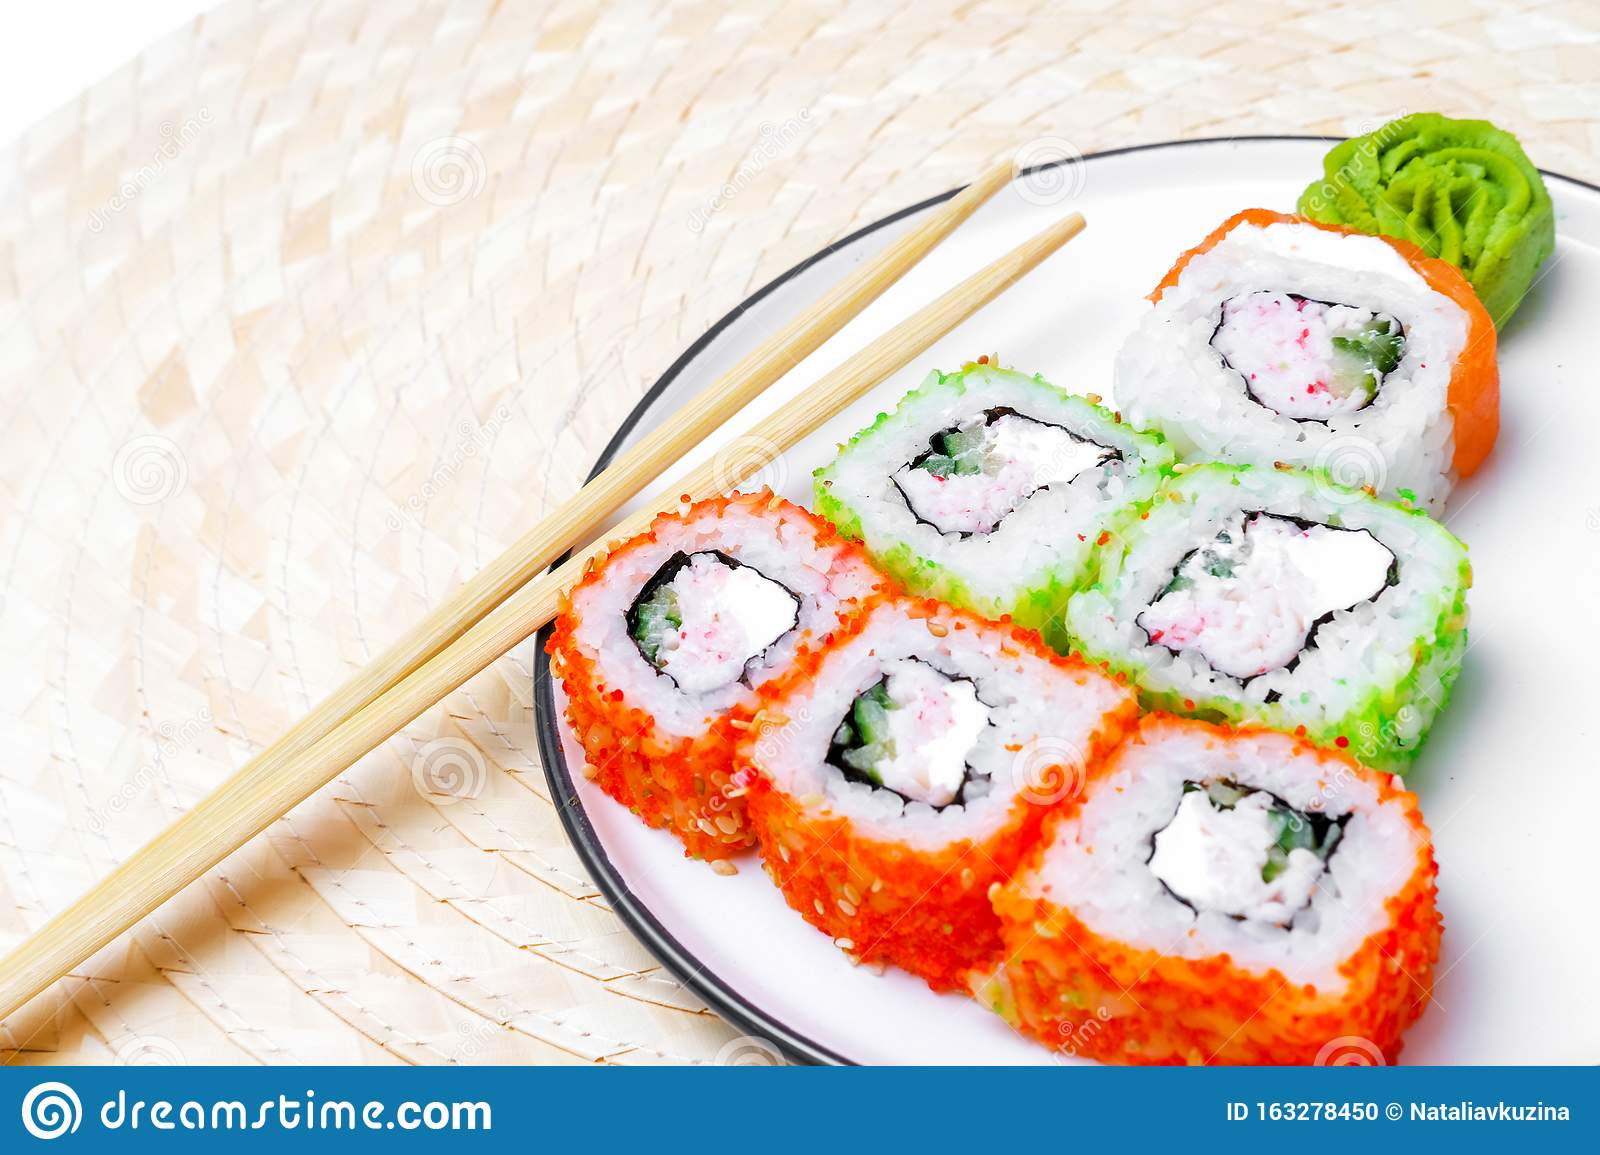 Funny Edible Christmas Tree Made From Sushi Creative Idea For Japanese Restaurant New Year Food Background Top View Stock Photo Image Of Christmas Asian 163278450